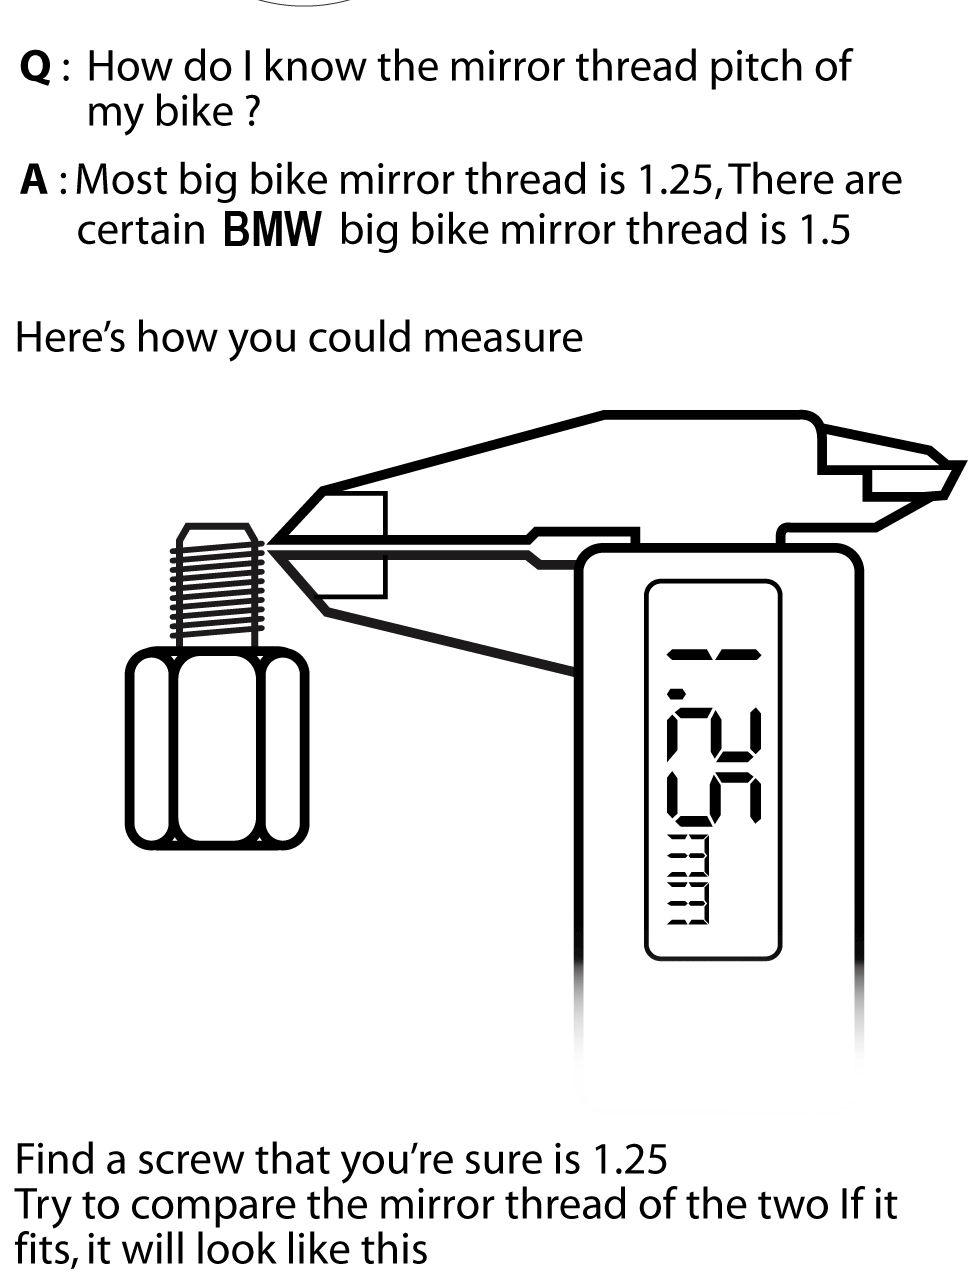 How to measure mirror thread?